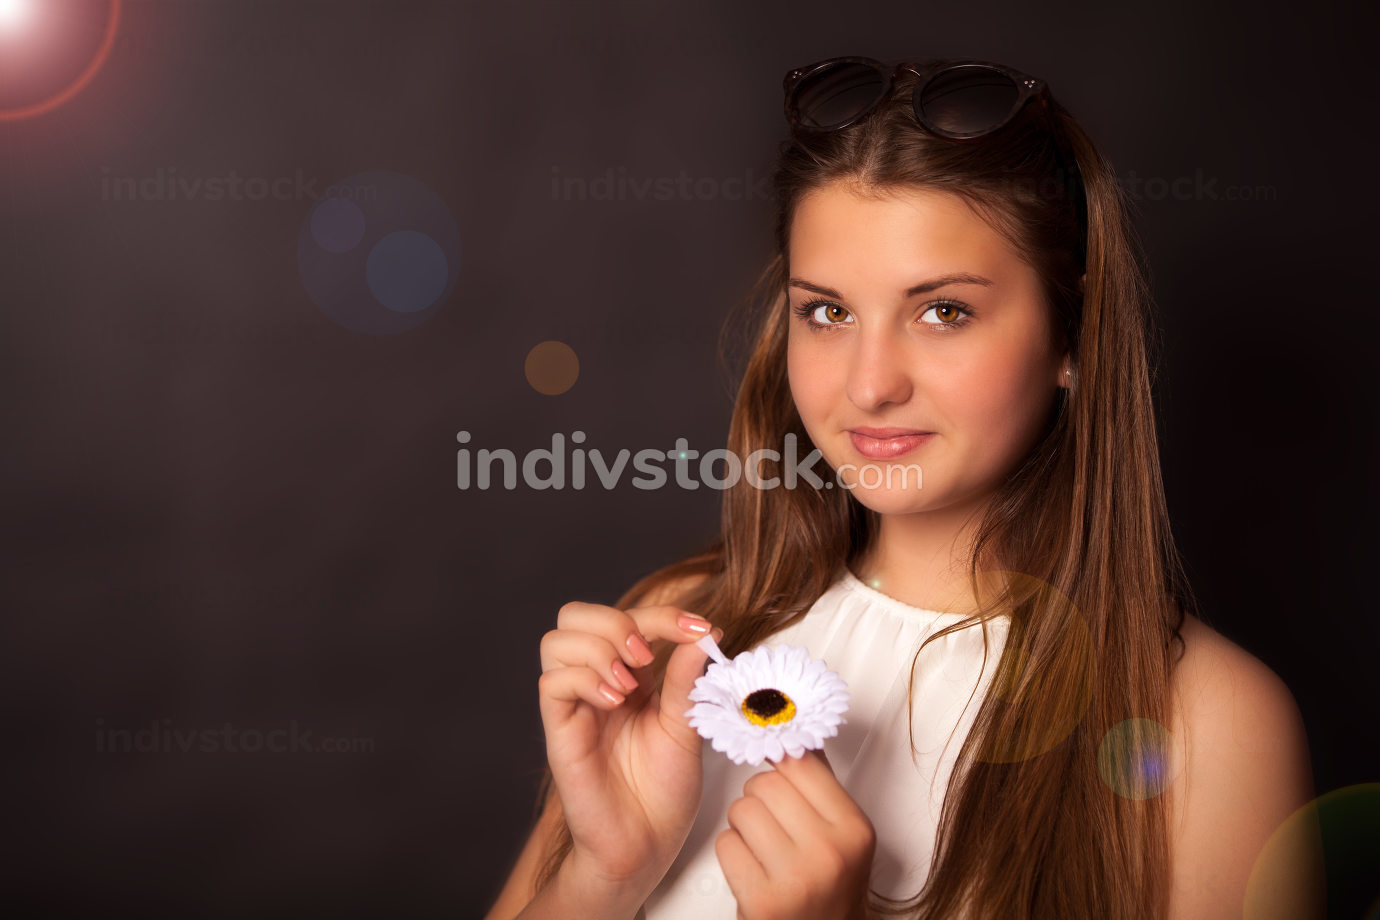 Young girl with a flower and sun glasses